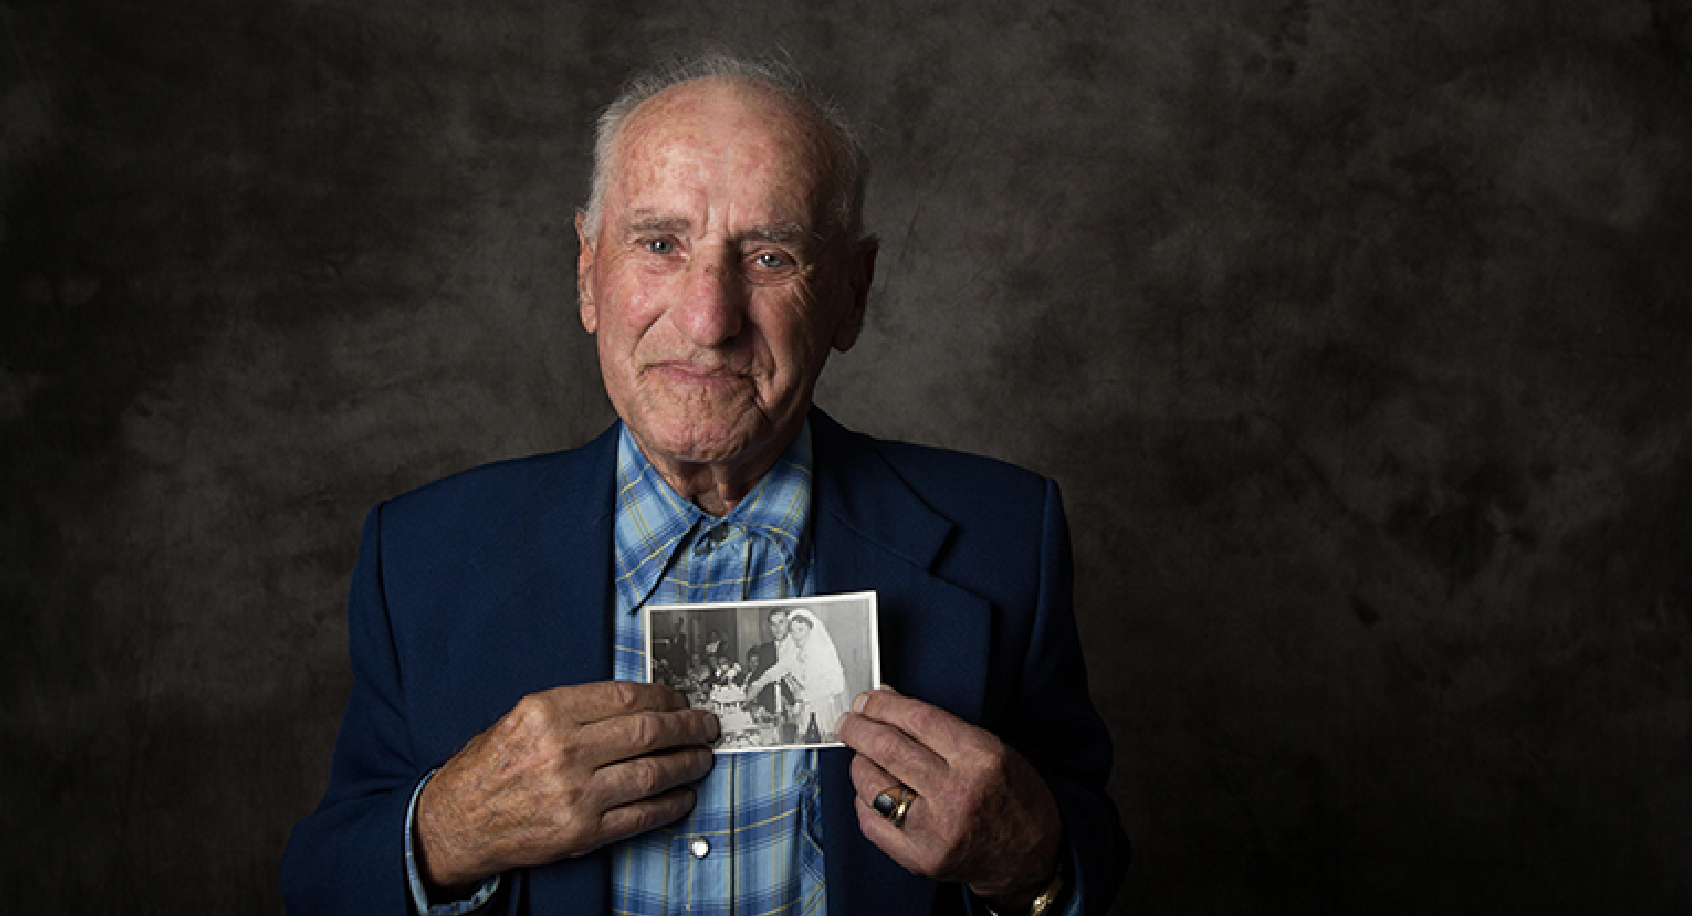 Photograph of Holocaust survivor Jack Meister holding a photo of himself and his wife at their wedding